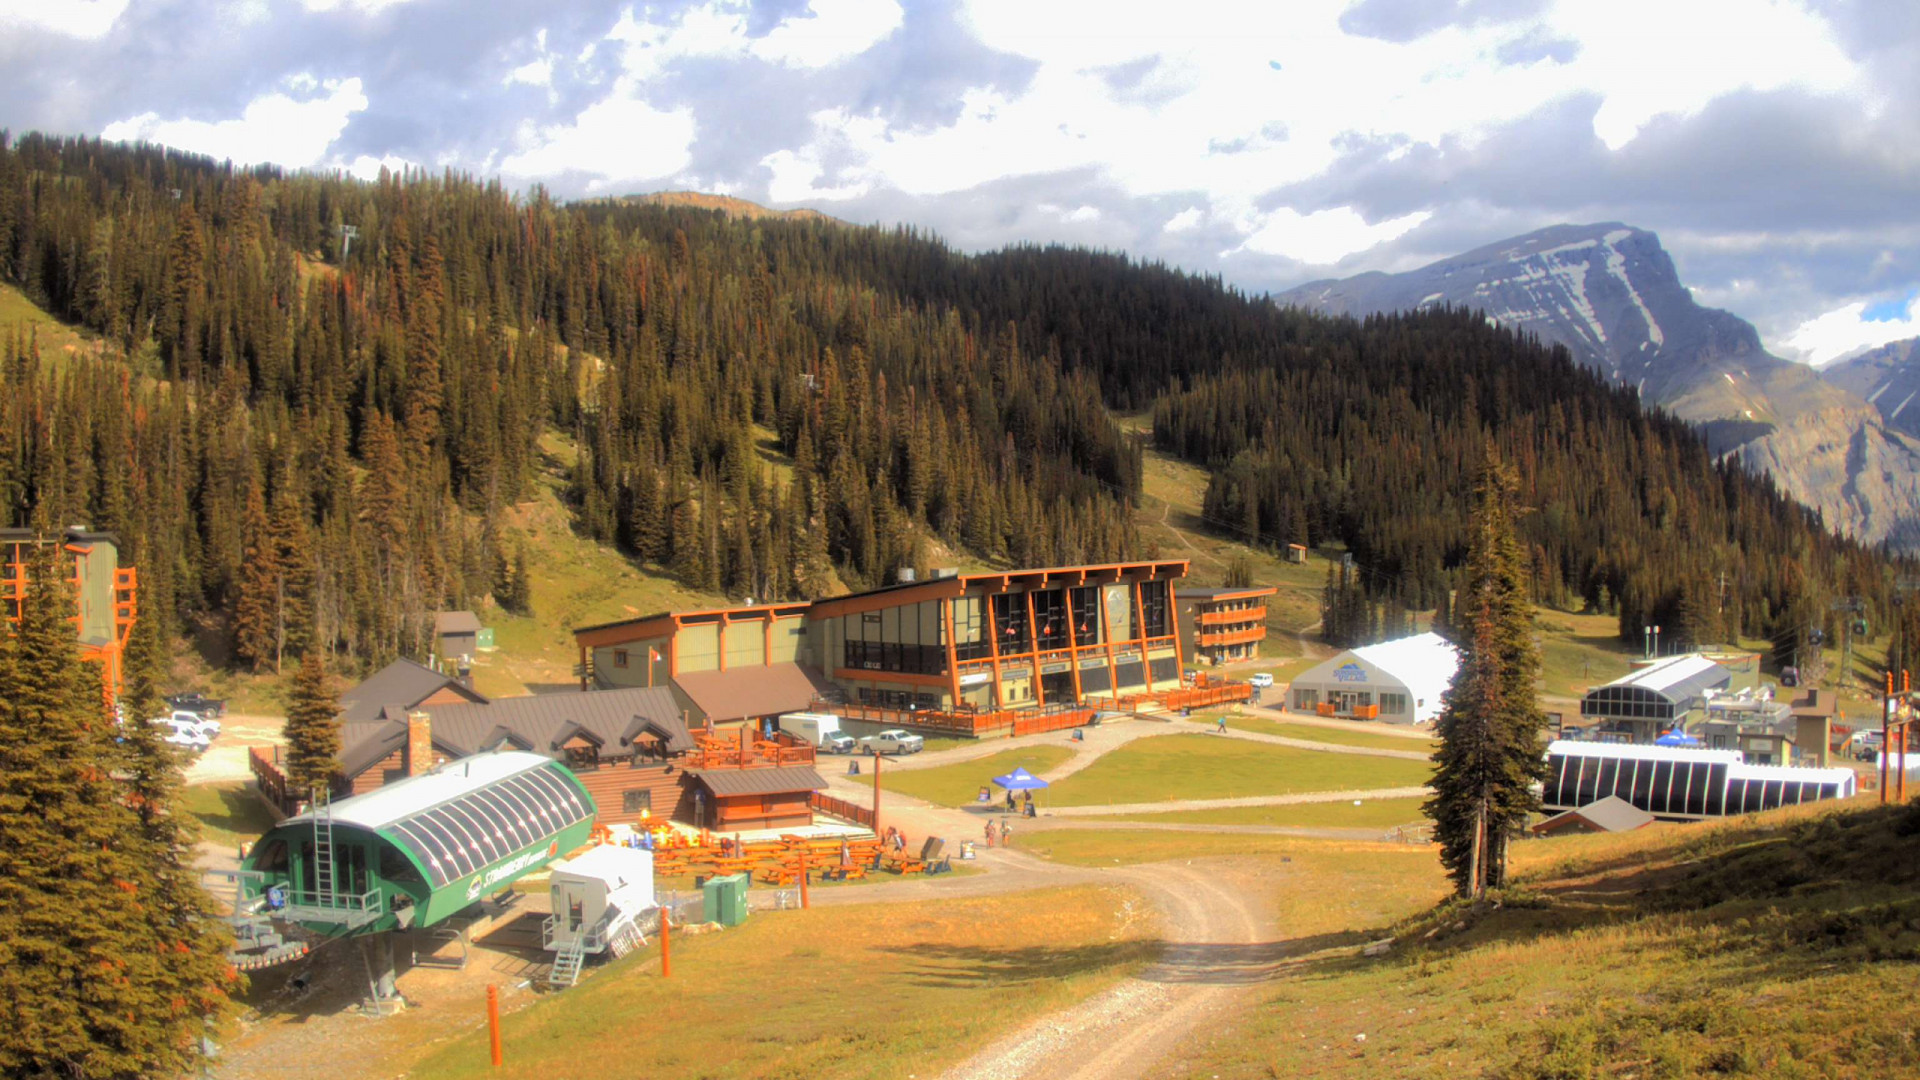 Sunshine Mountain Lodge, Sunshine Village Webcam